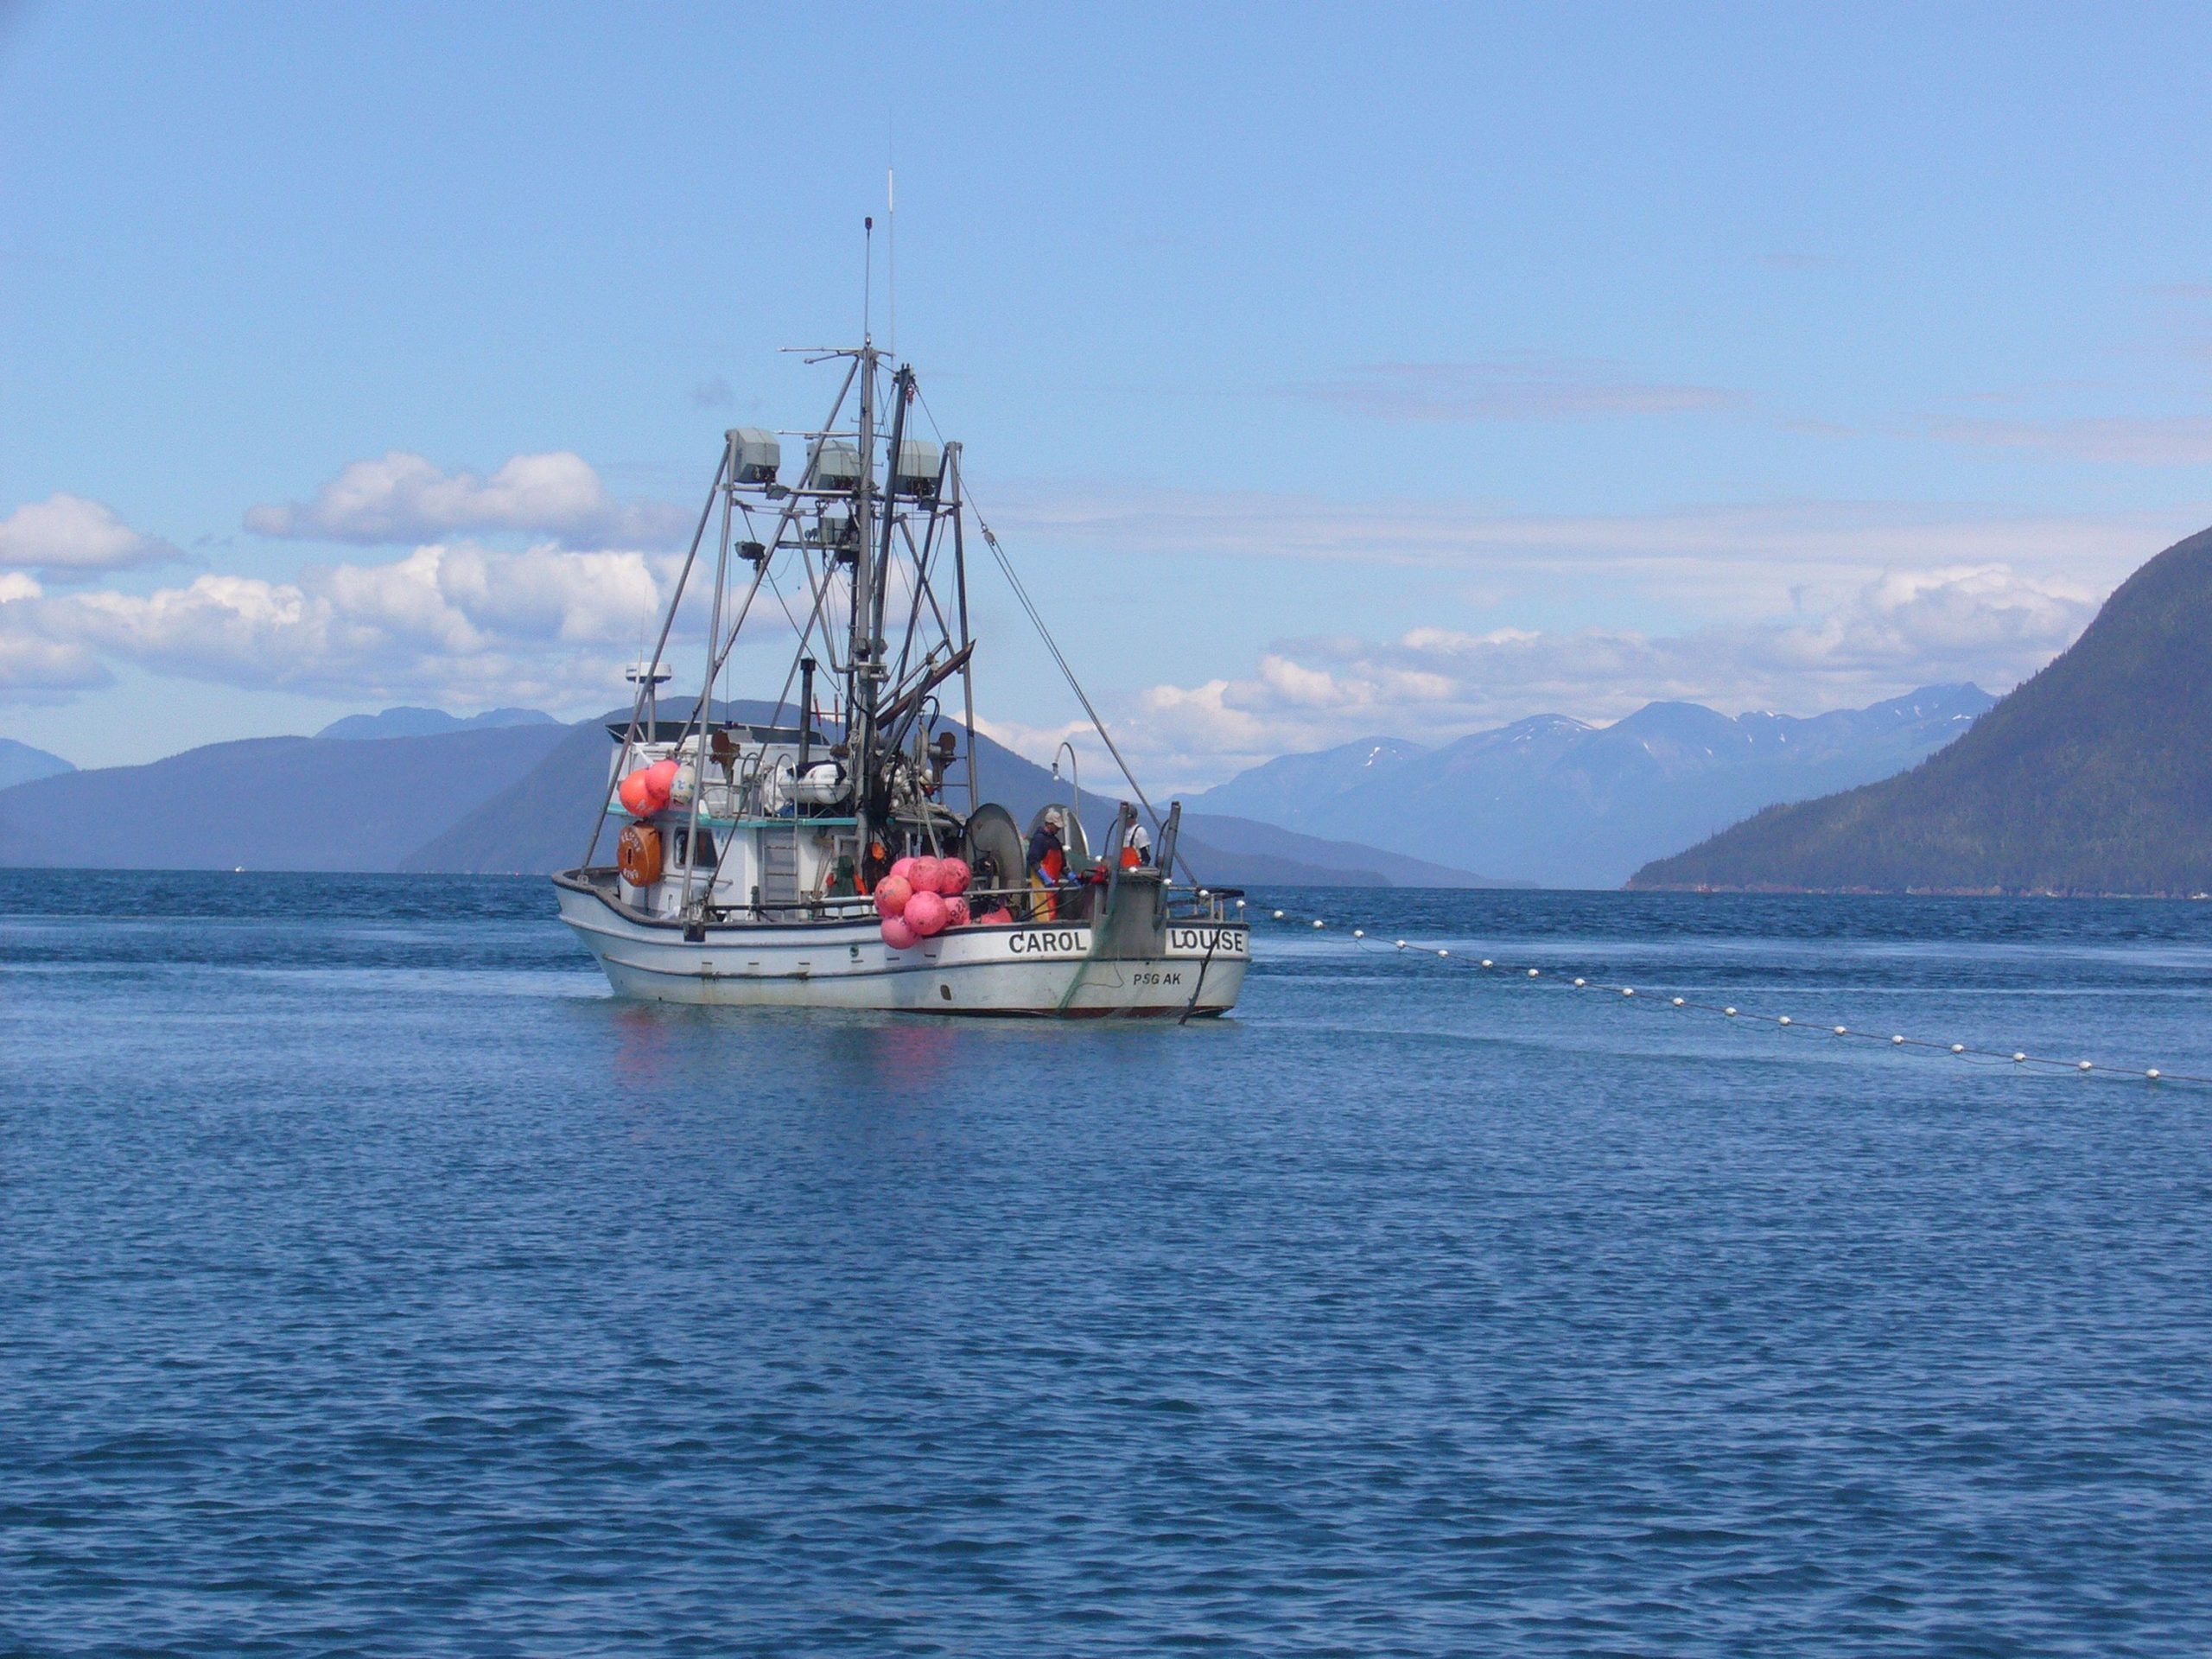 Alaskan fisheries and sustainability